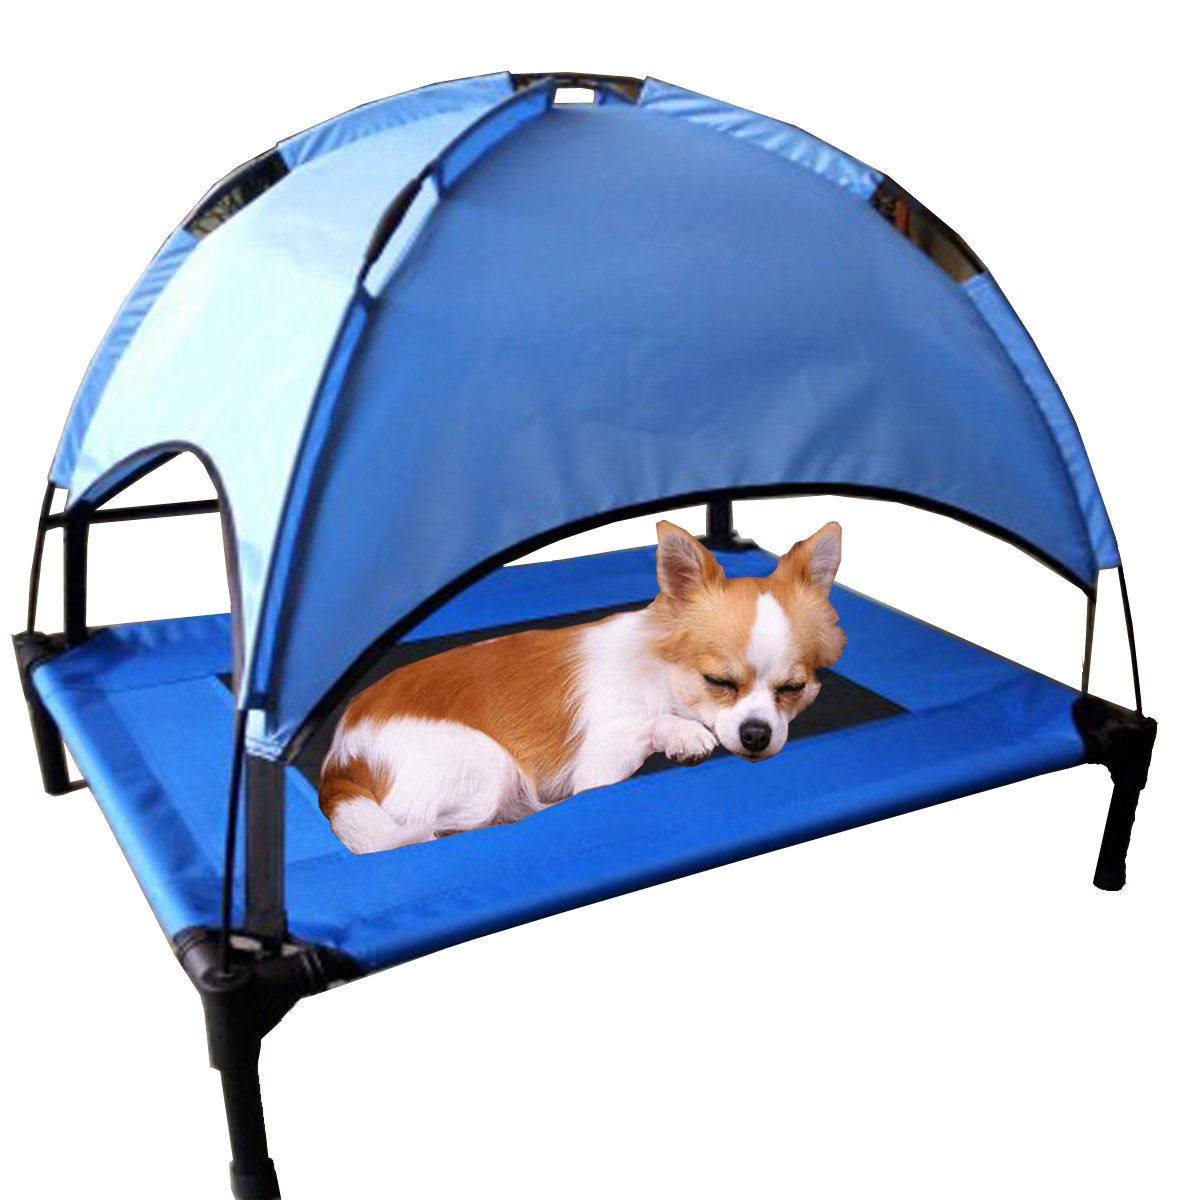 bluee M bluee M JANMO Pet Bed Dog Foldable Indoor and Outdoor Cot Tent Canopy Shelter (M, bluee)